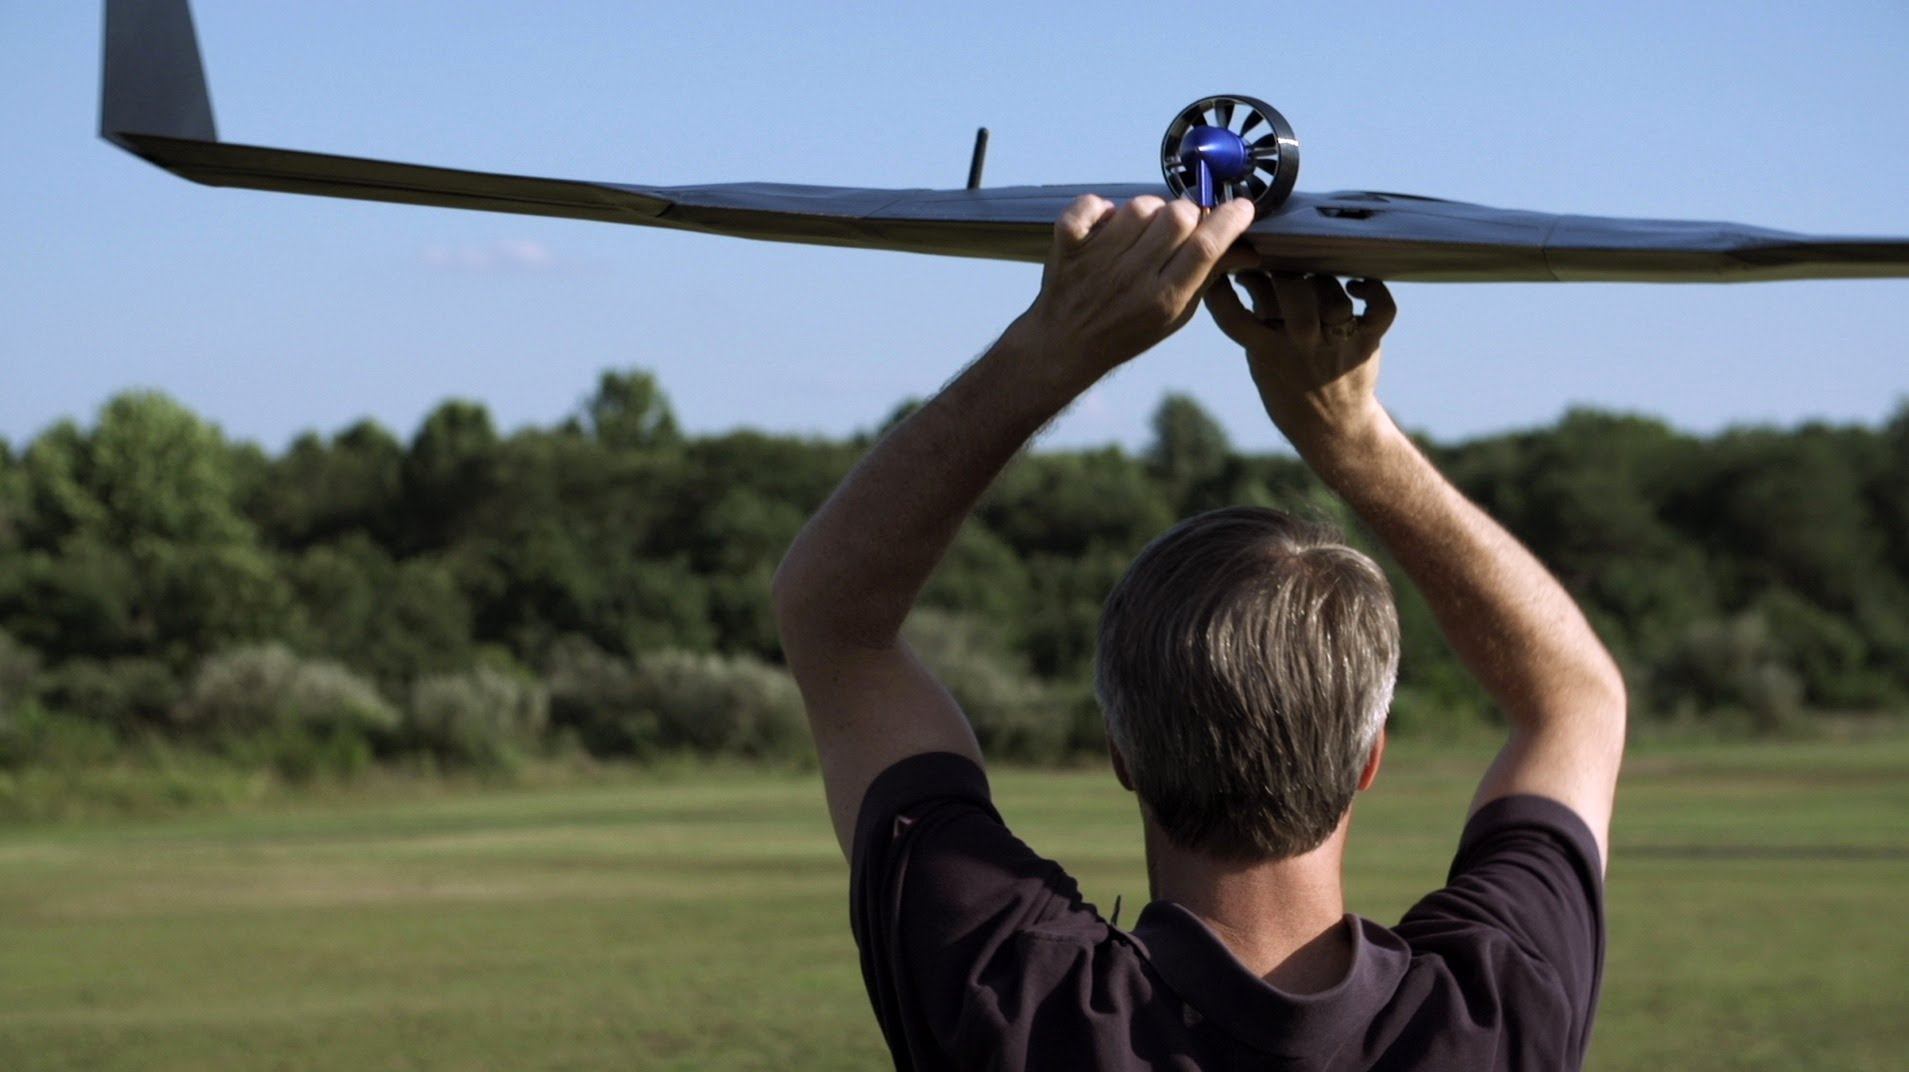 UVA Hand Launching Drone